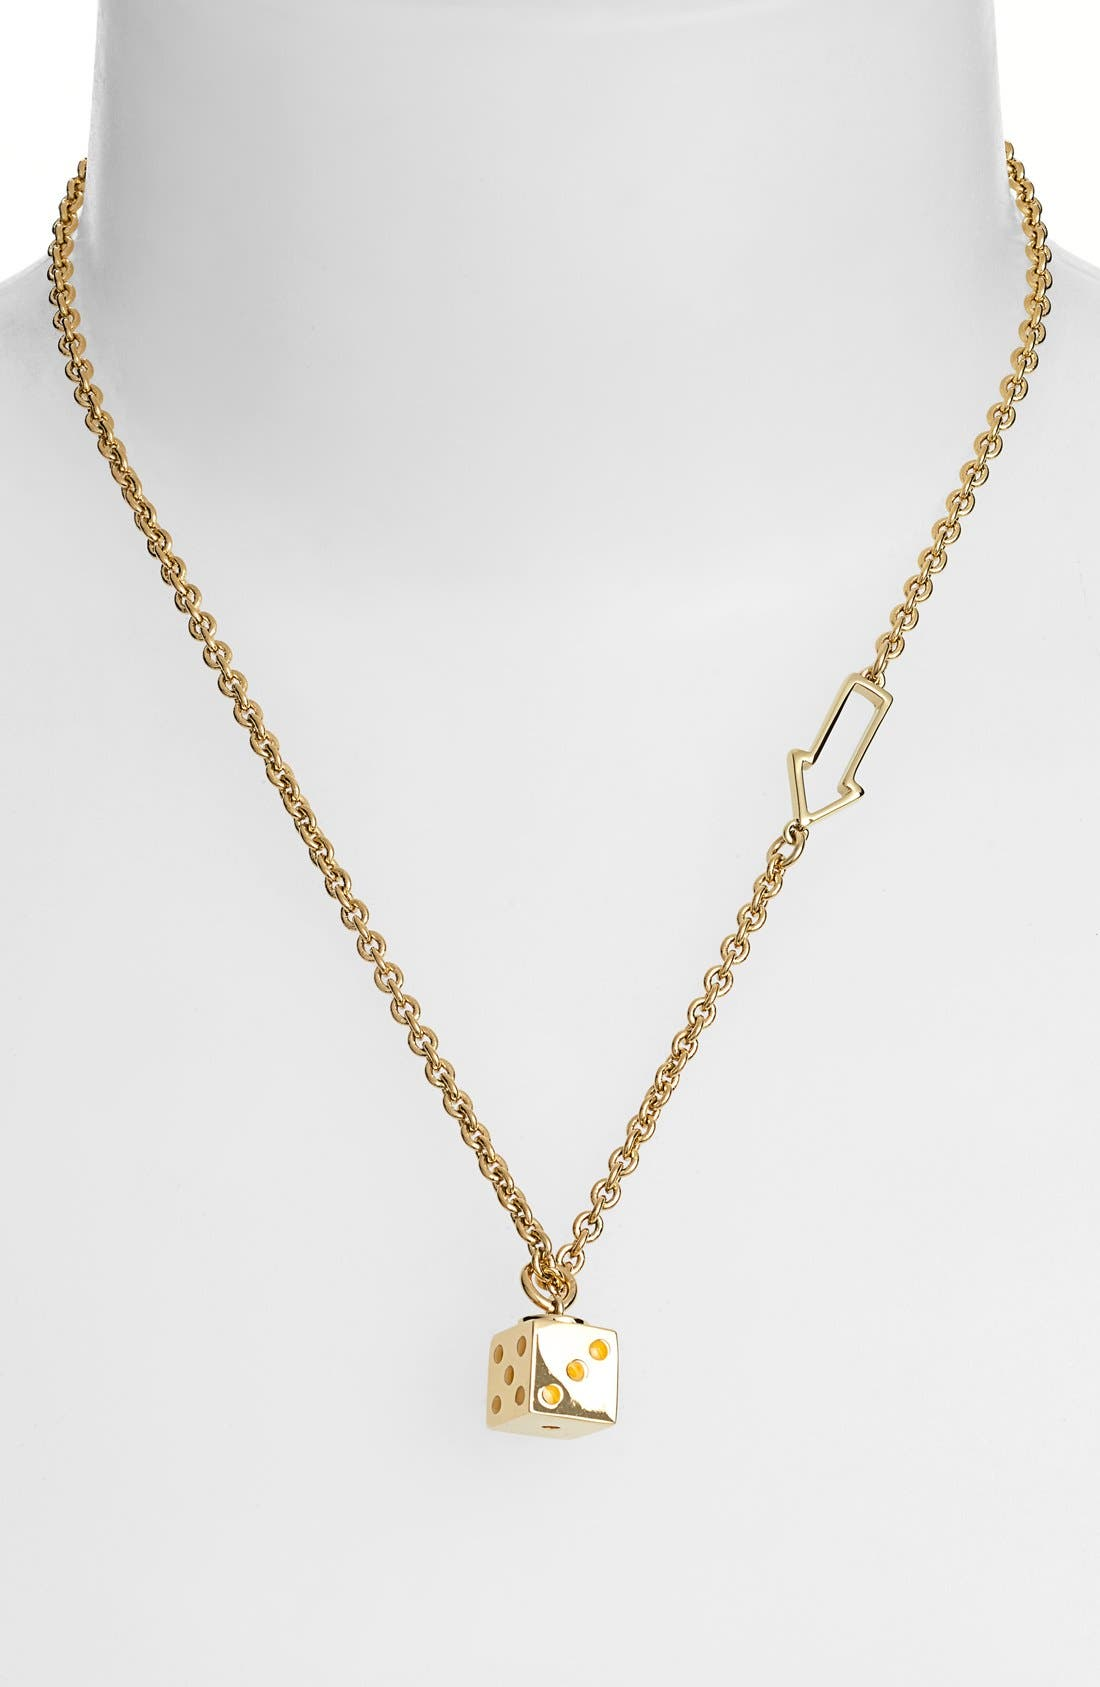 Alternate Image 1 Selected - MARC BY MARC JACOBS 'Dicey' Pendant Necklace